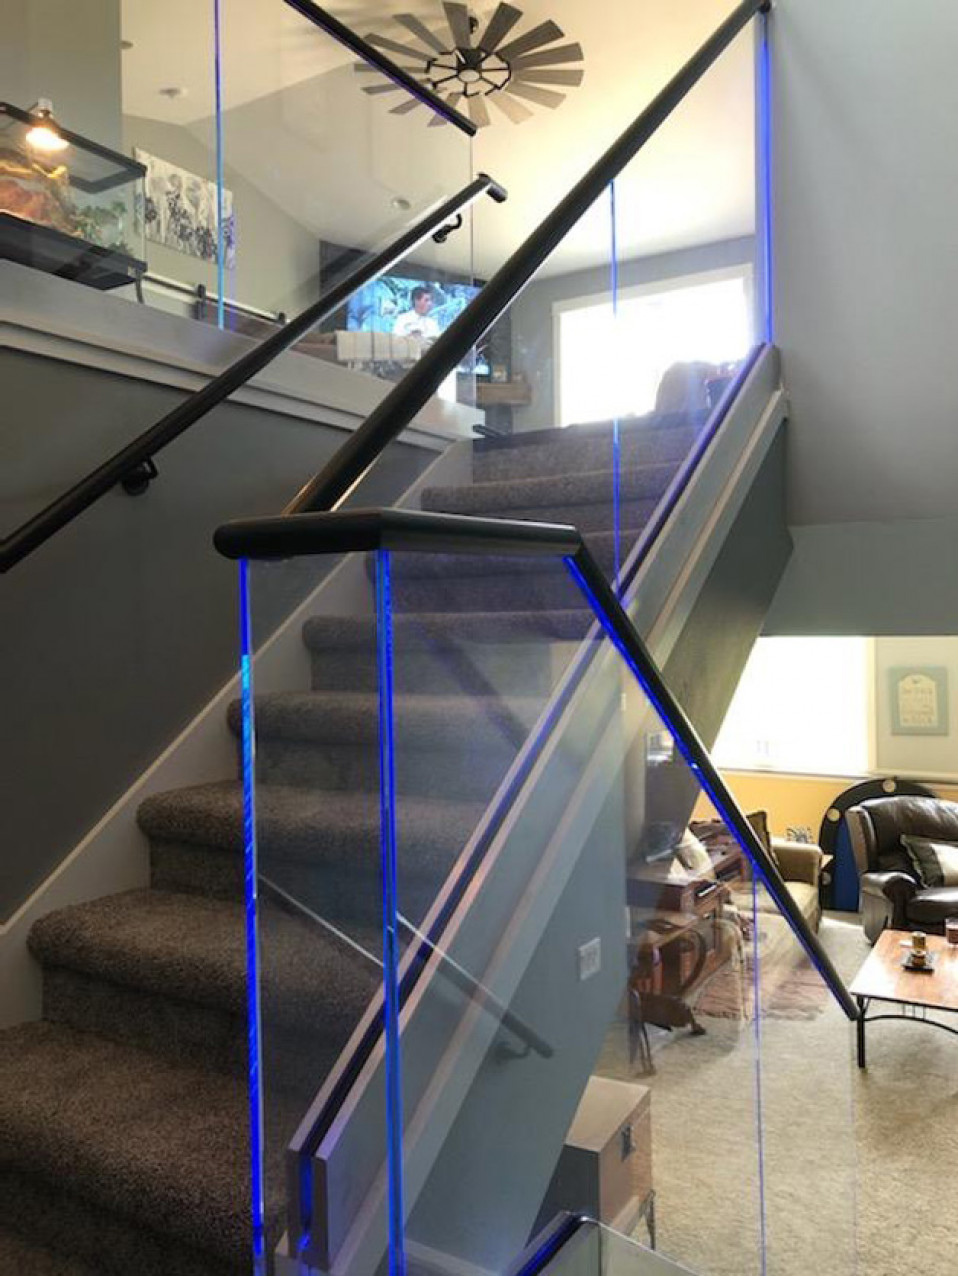 Lighted Handrail & Railing Systems